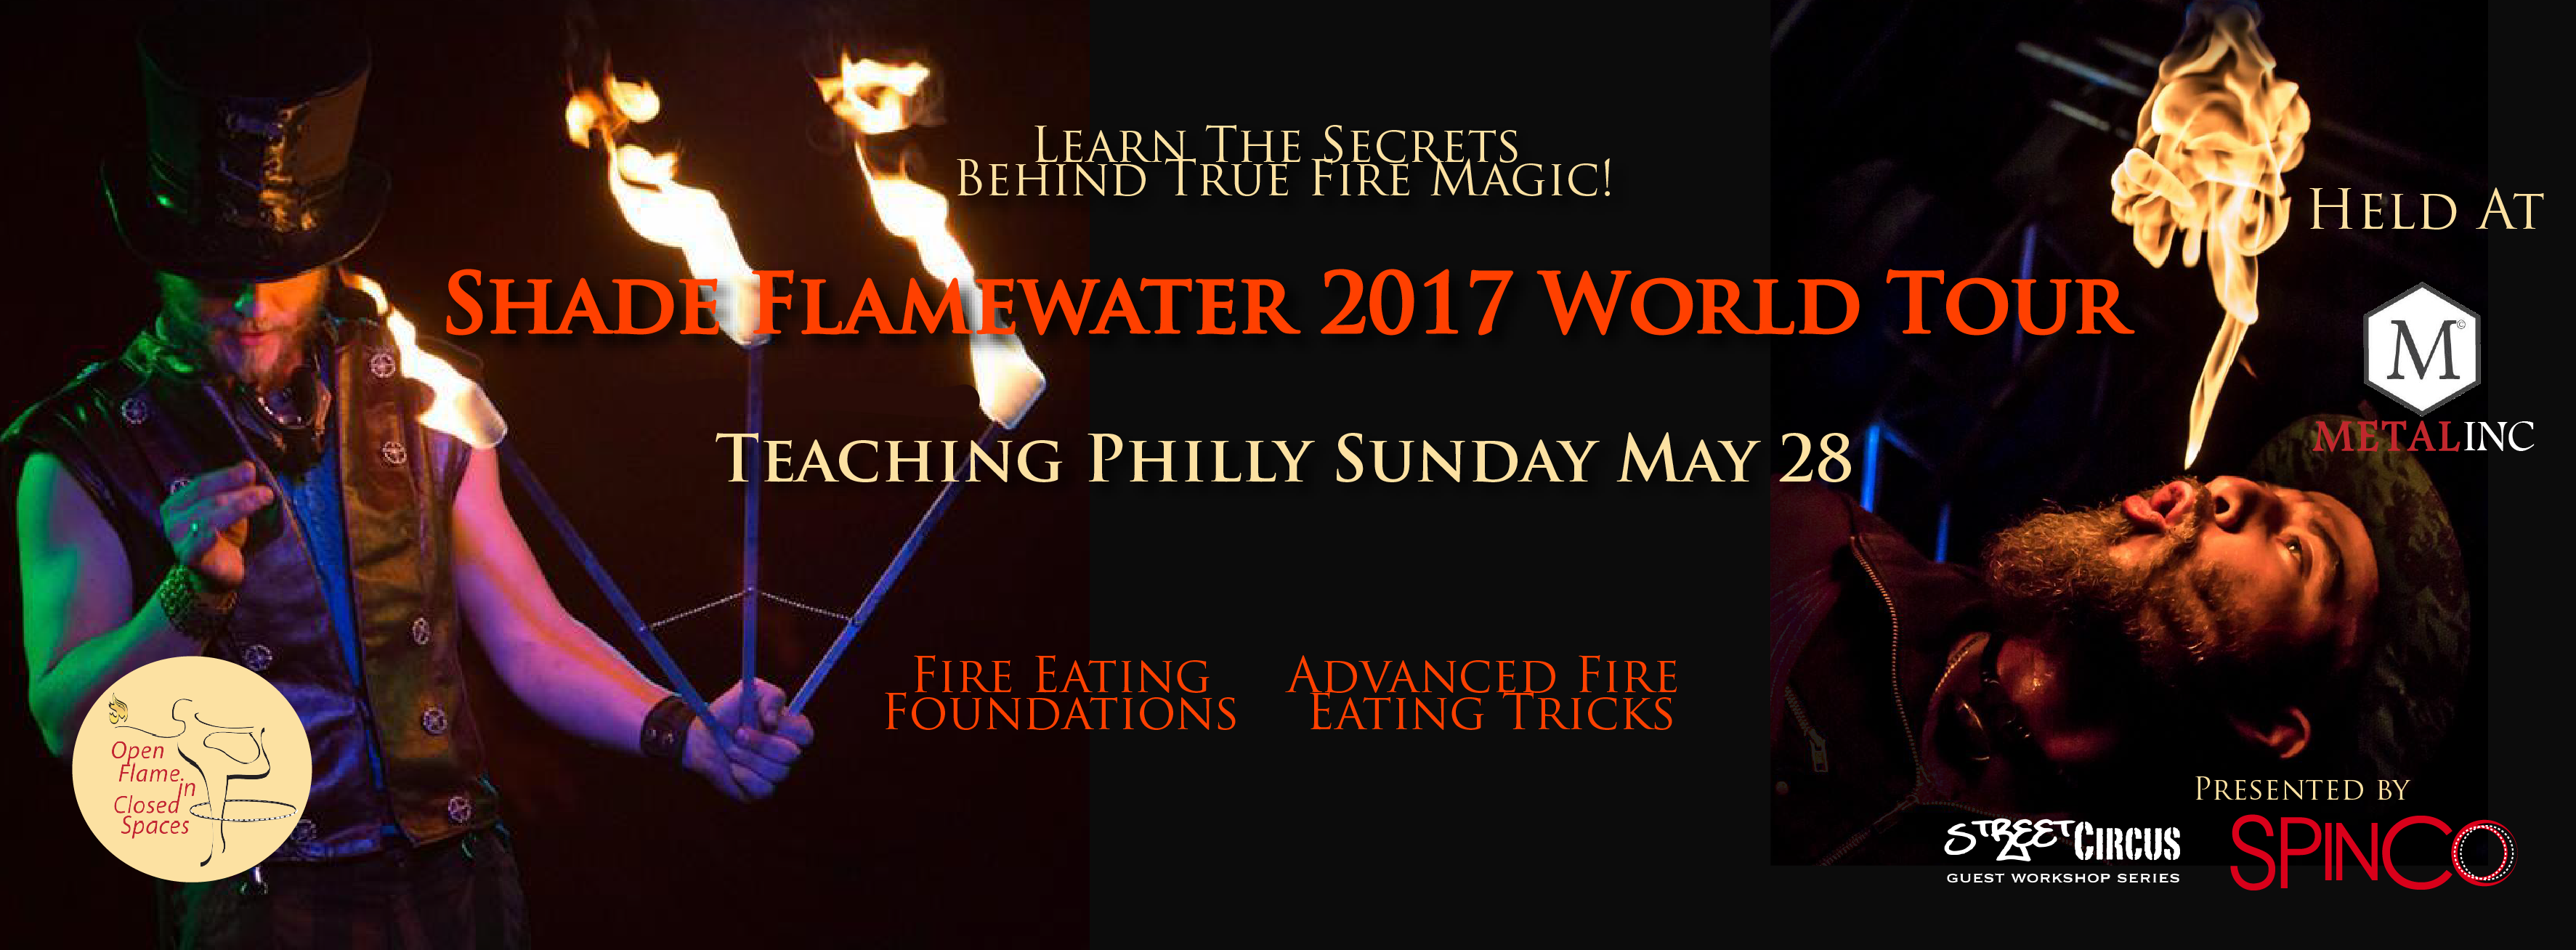 Shade Flamewater 2017 Workshop Flyer 01